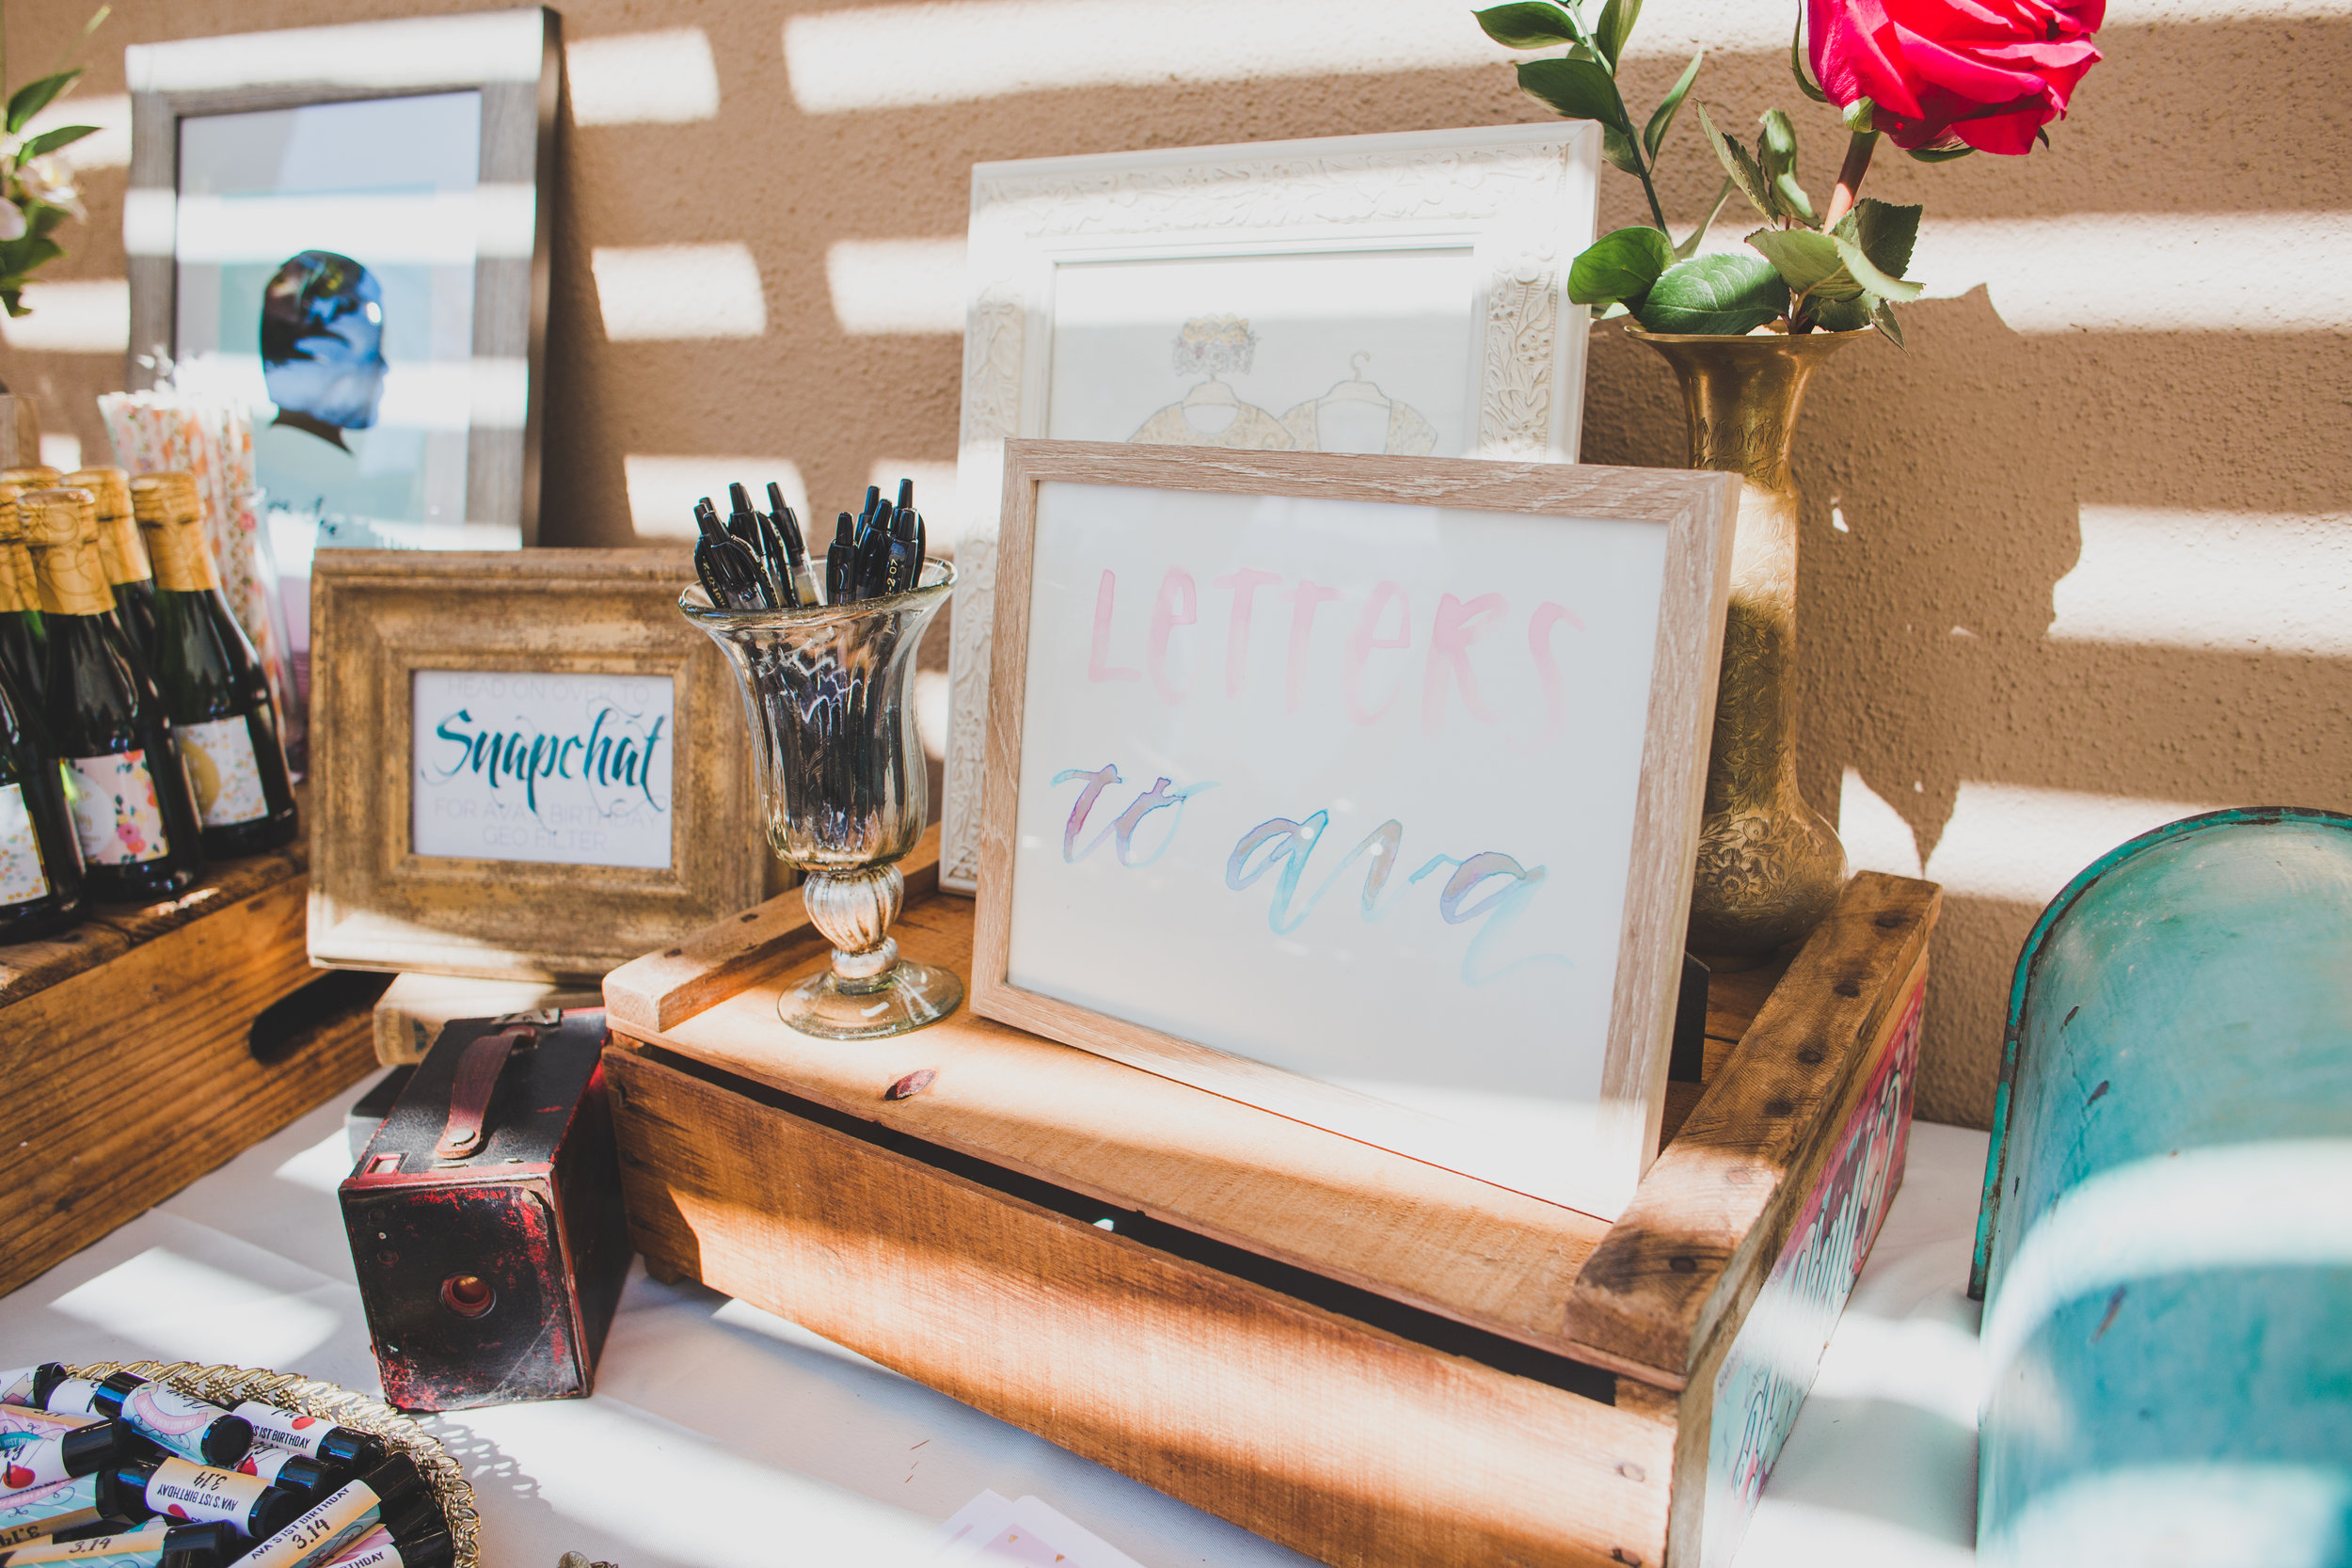 First Birthday party Ideas - Vintage Mimosa Bar - First Birthday Party Ideas - A Vintage Chic Pi Day Themed 1st Birthday Party